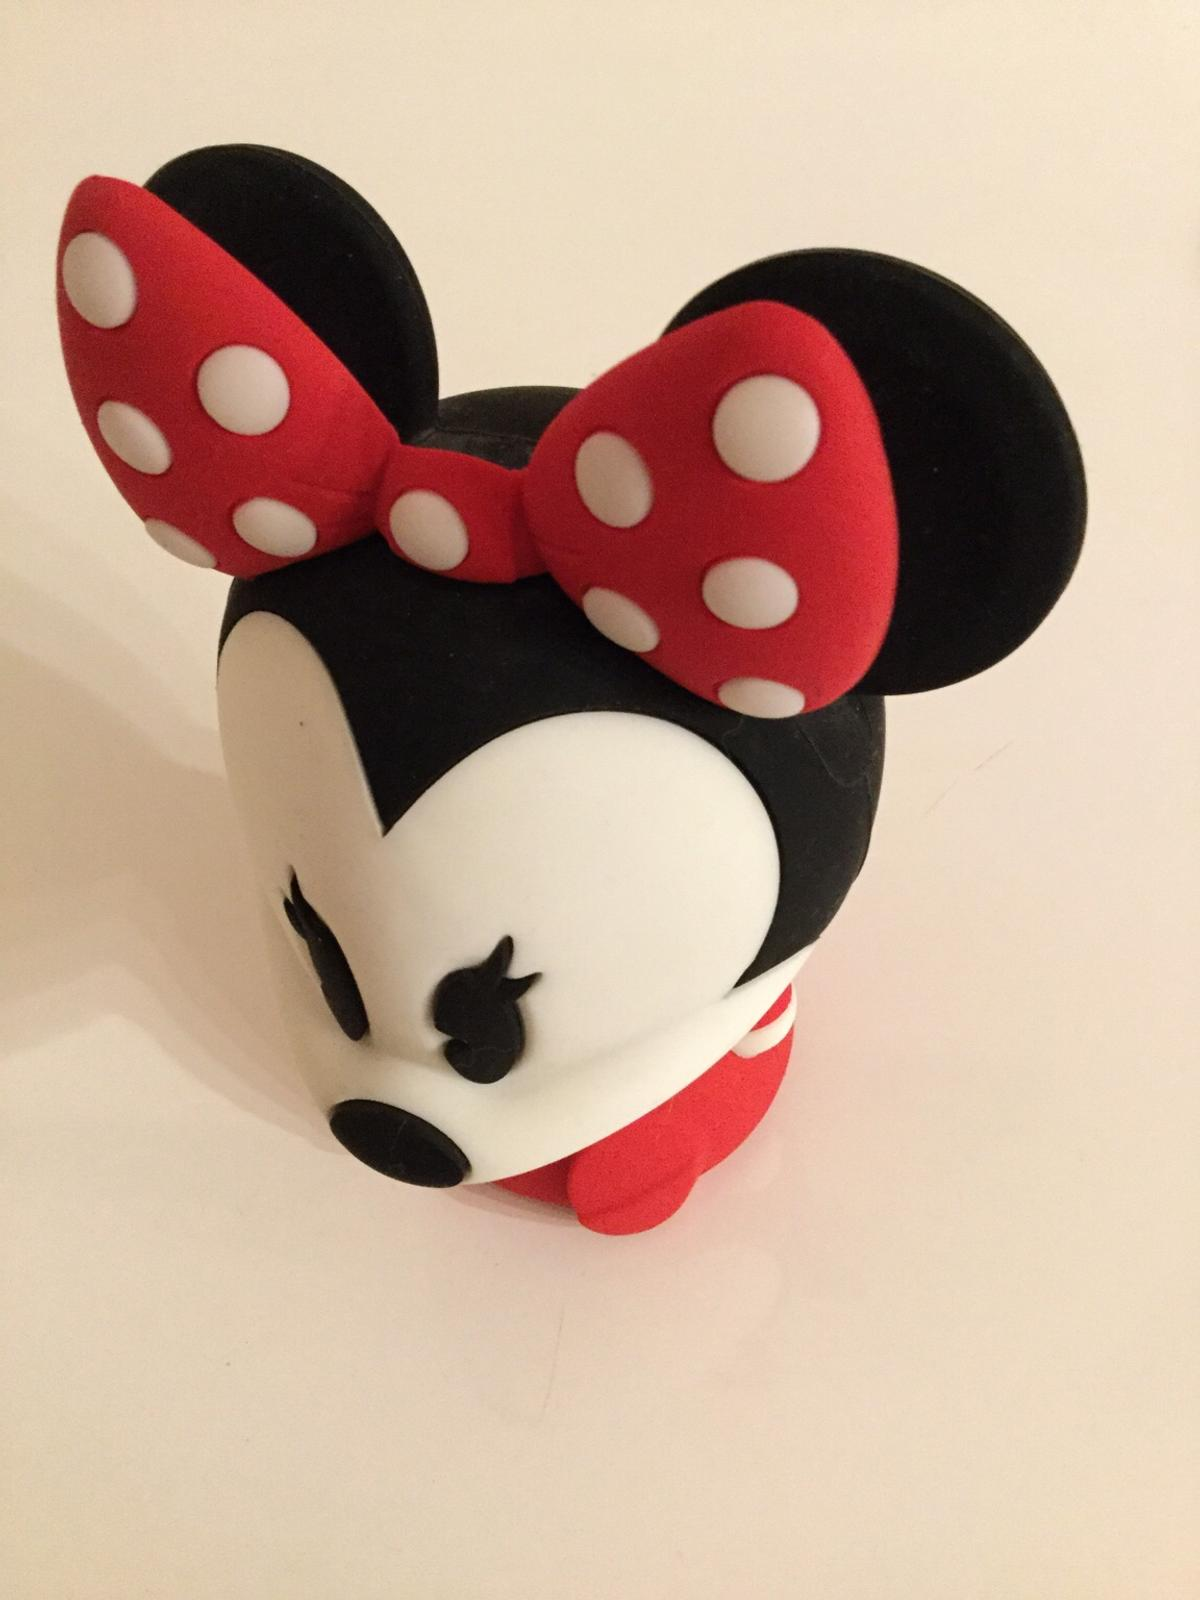 Philips Led Kinderlampe Disney Minnie In 8605 Kapfenberg For 20 00 For Sale Shpock